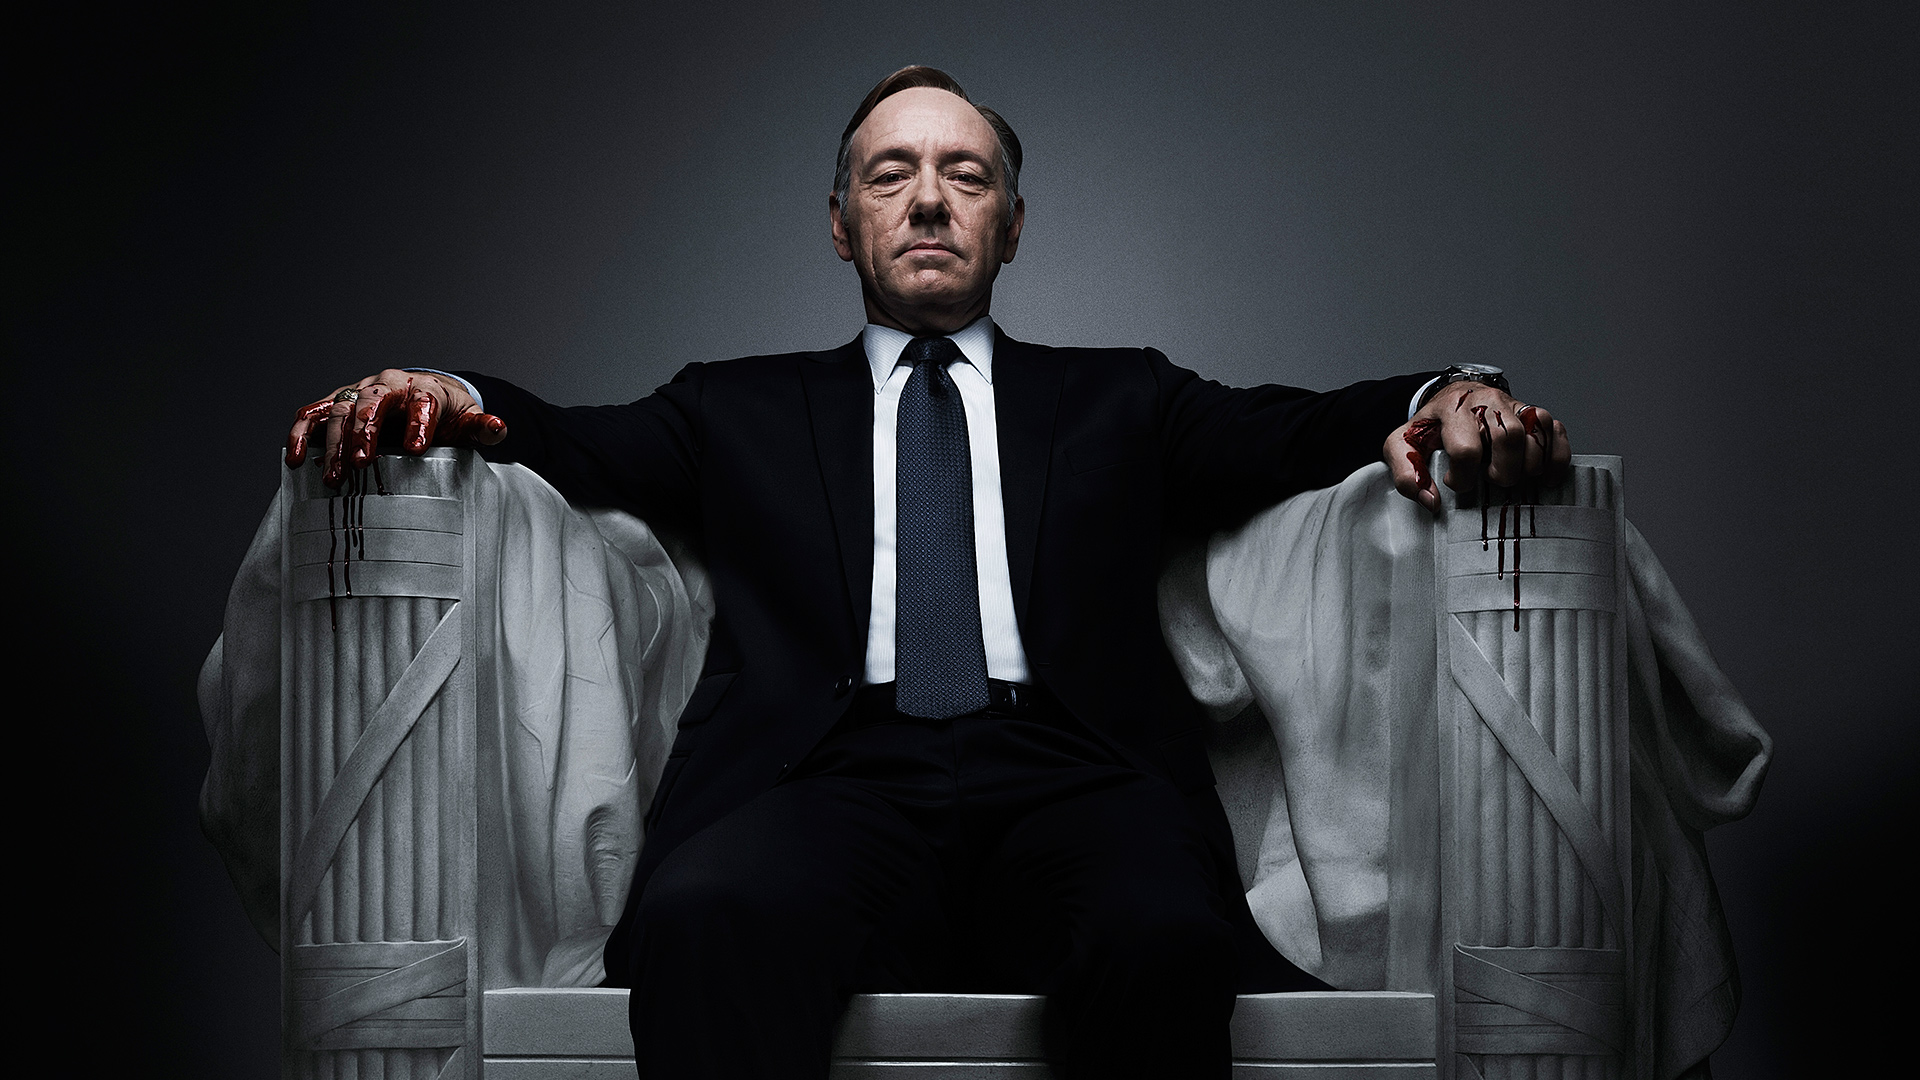 Outstanding Drama Series We'll give credit where credit is due: House of Cards totally blew up this year, and not just because of its standout performances. The writing is superb, the cinematography is artful, and the characters are well-rounded and believable, though extreme at times. The show isn't just impressive because it's one of Netflix's first forays into original programming, it is impressive because it is outstanding. Source: Netflix